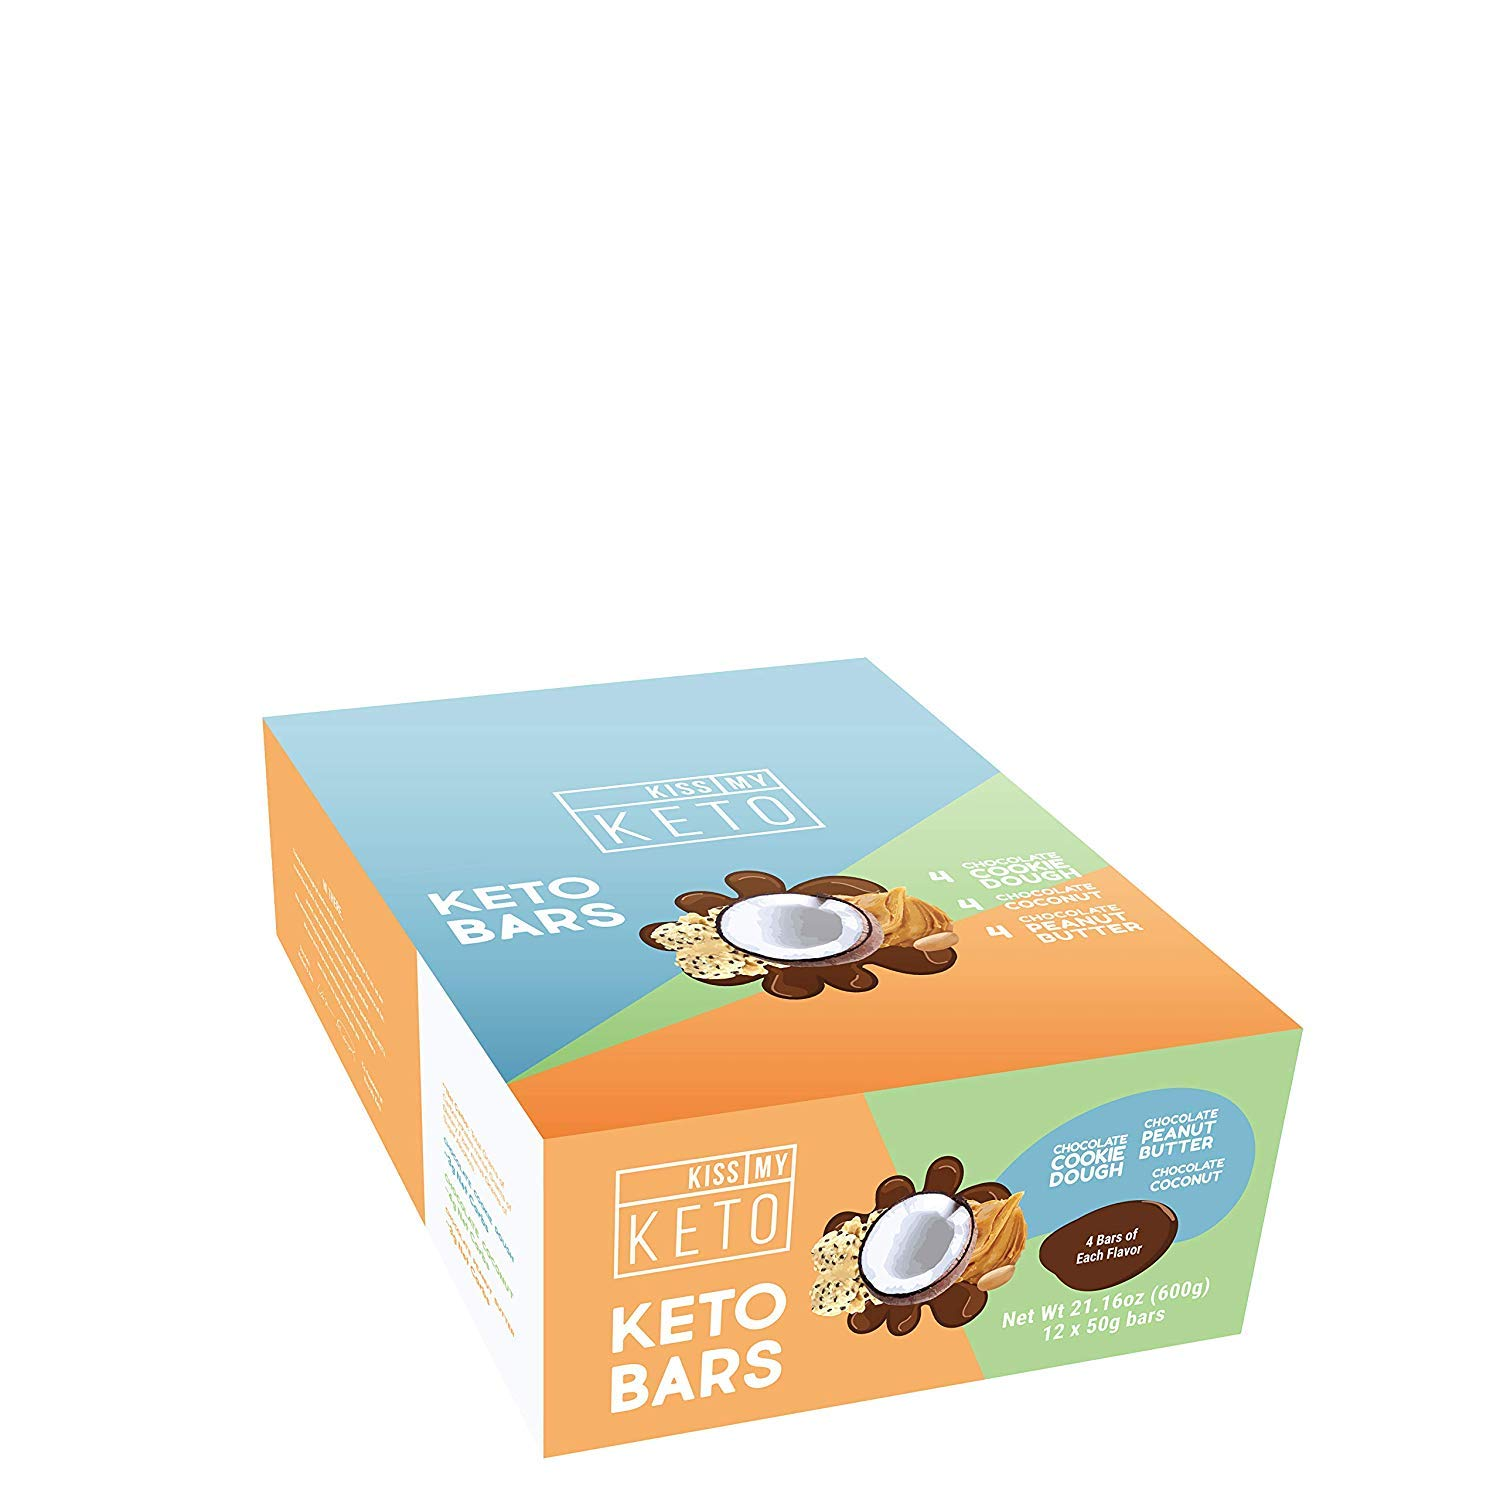 Kiss My Keto Snacks Keto Bars - Keto Chocolate Variety Pack (12) Nutritional Keto Food Bars, Paleo, Low Carb/Glycemic Keto Friendly Foods, Natural On-The-Go Snacks, Quality Fat Bars 3g Net Carbs by Kiss My Keto (Image #6)